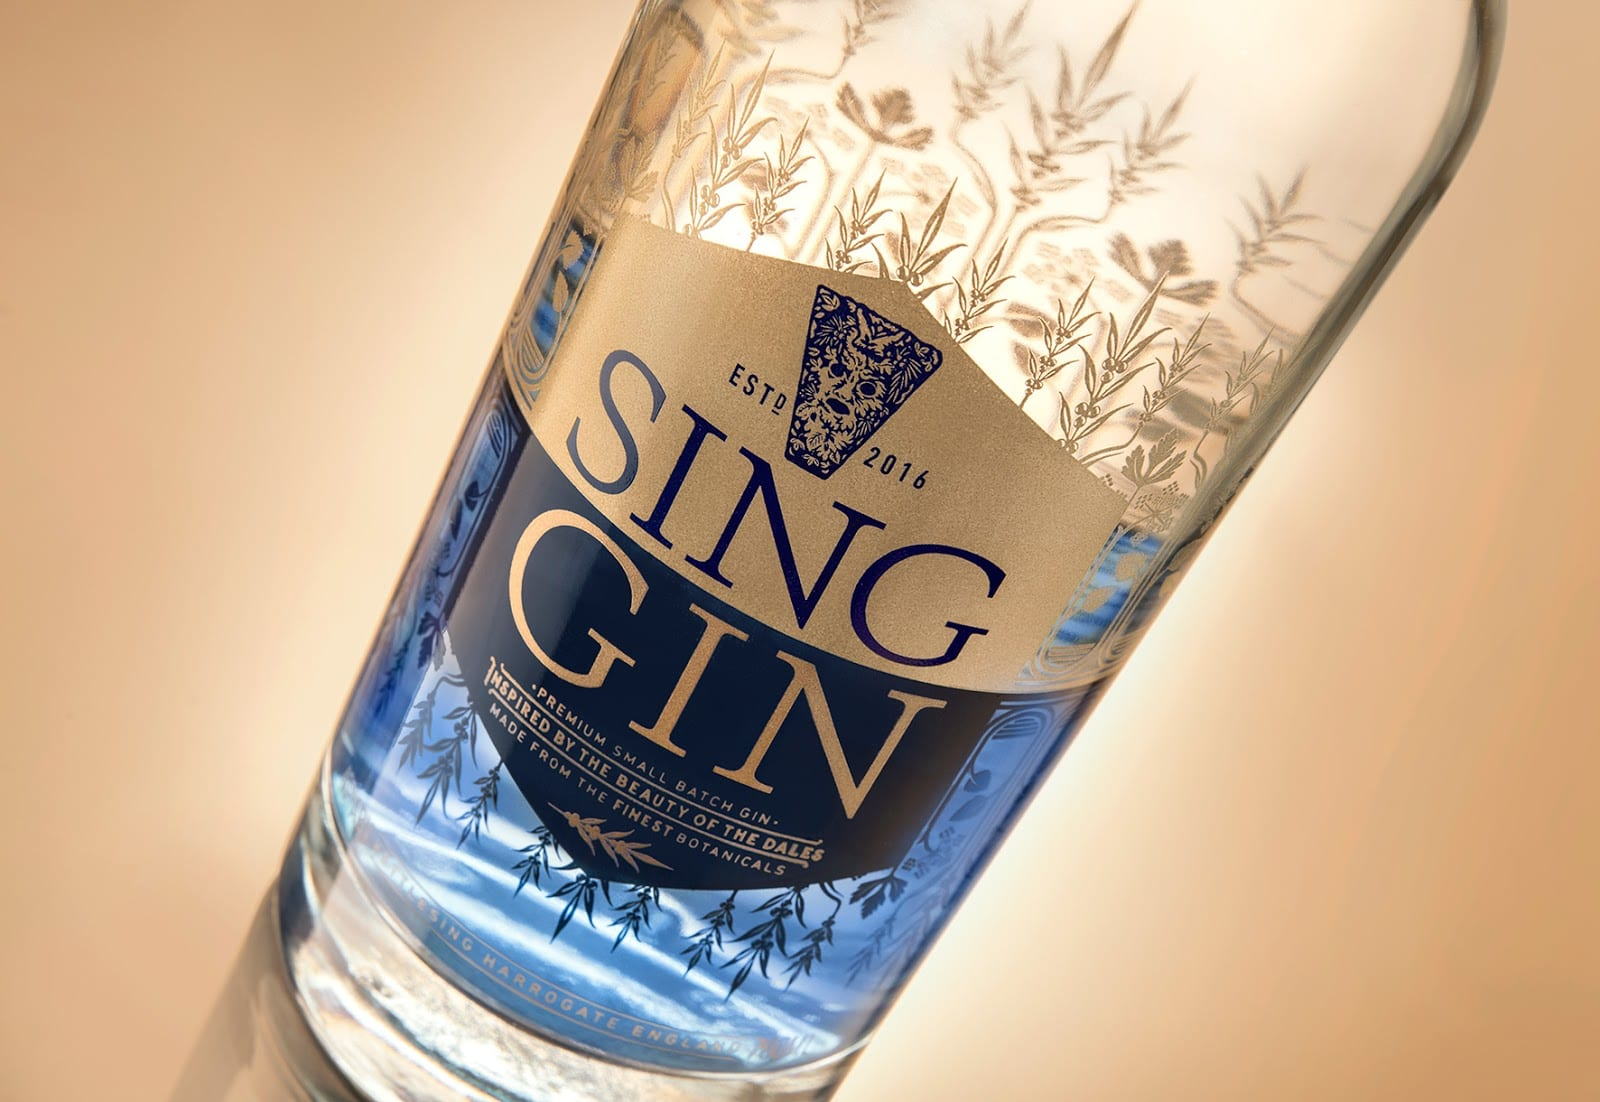 Sing Gin 01 - Ach, tie obaly – Sing Gin